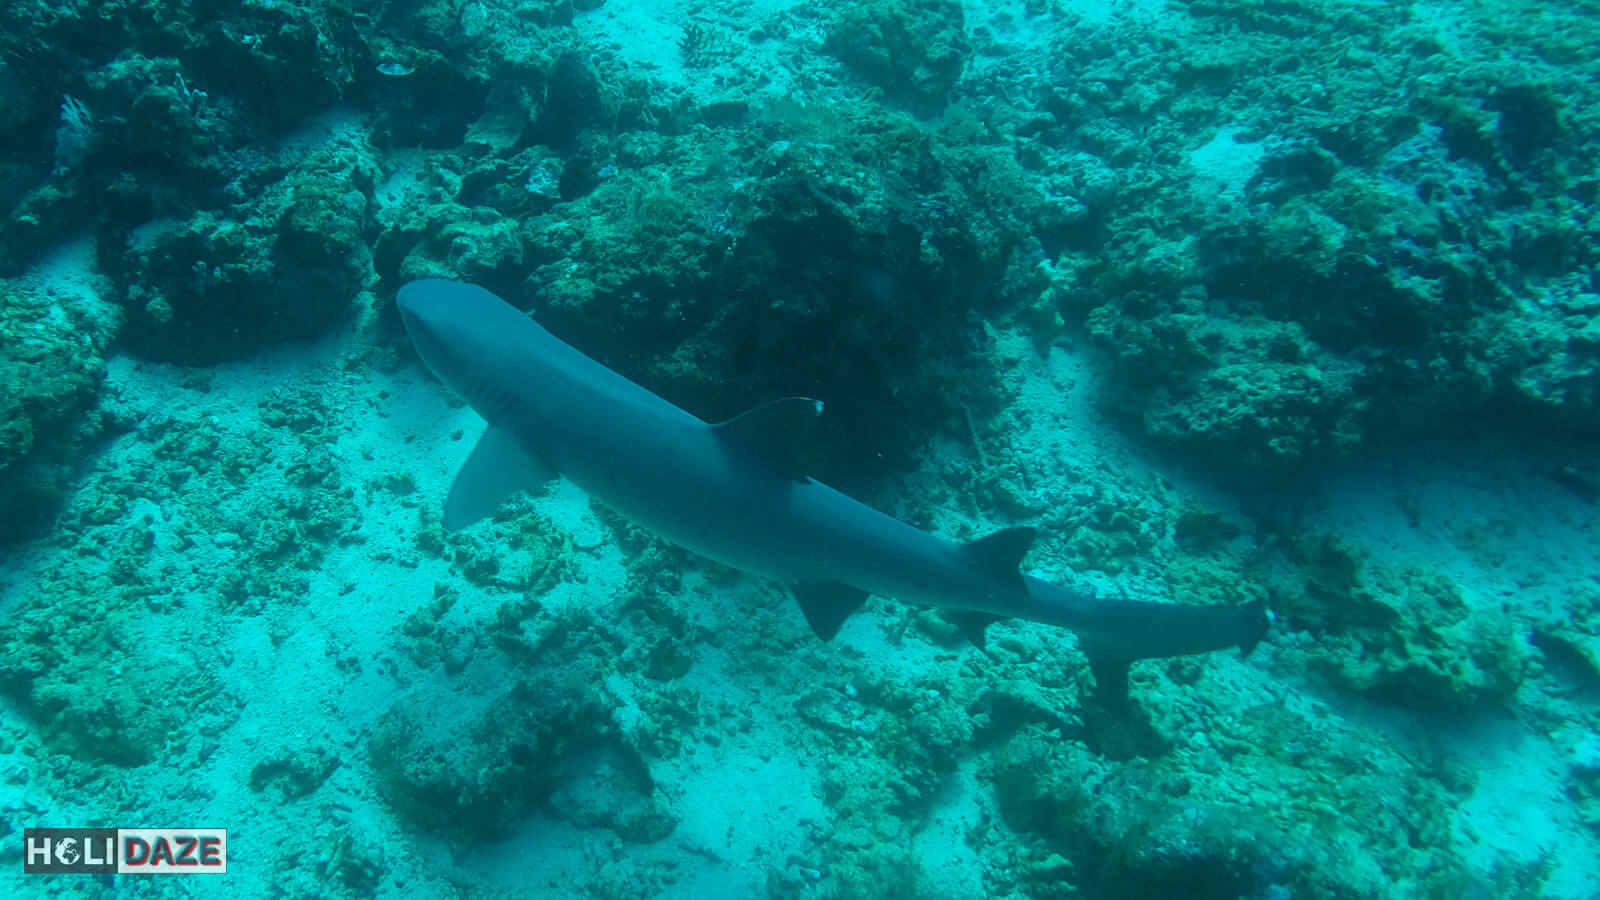 Shark spotted while diving at Sipadan Island in Sabah, Malaysia